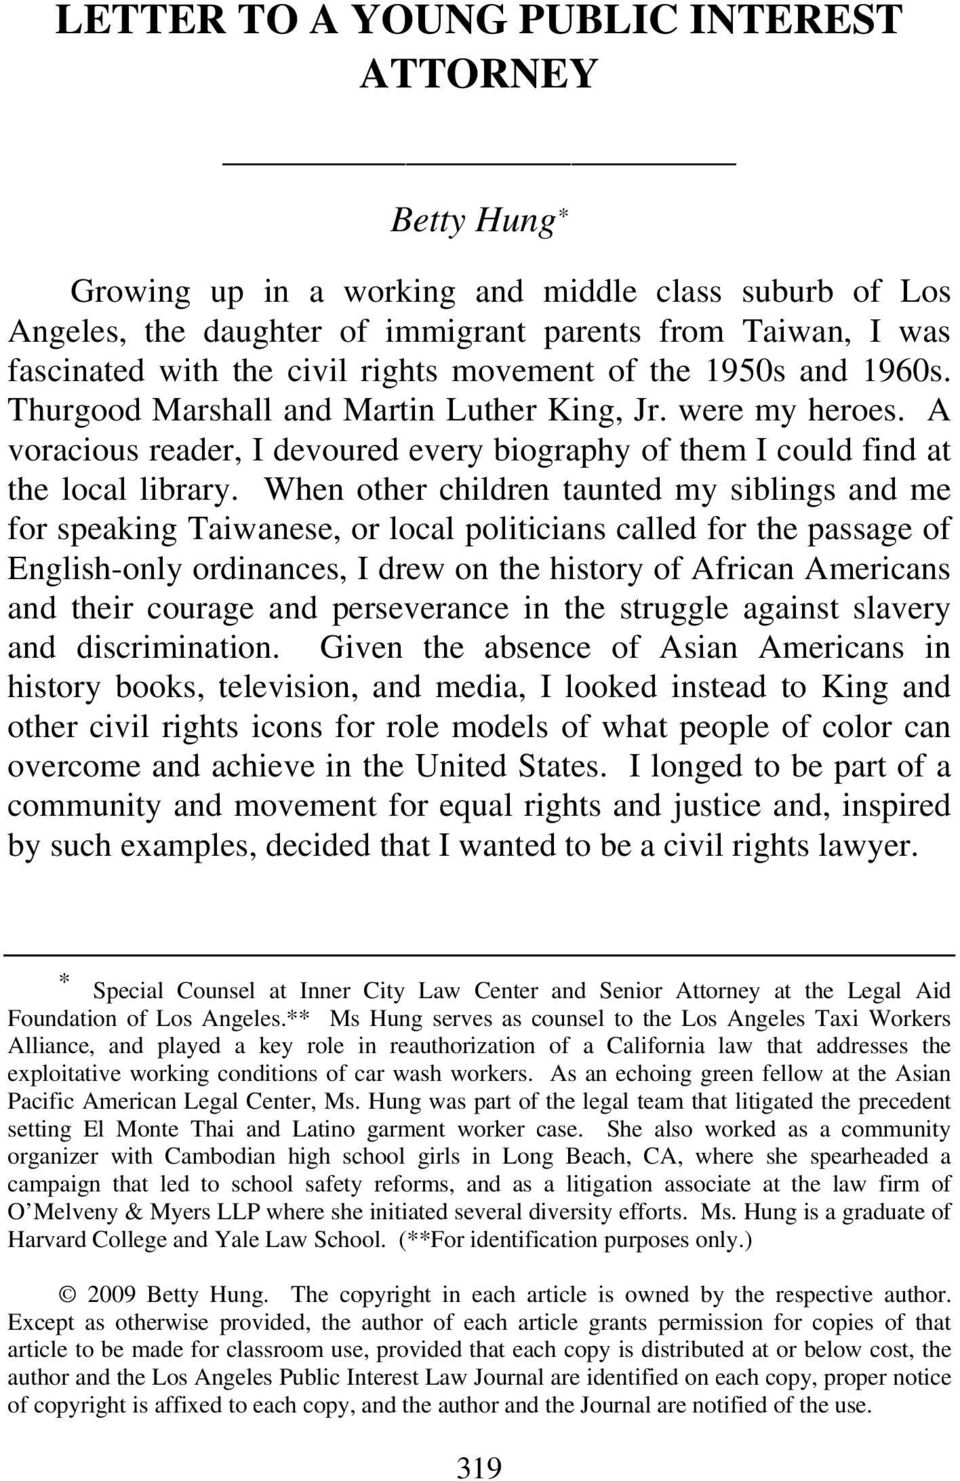 When other children taunted my siblings and me for speaking Taiwanese, or local politicians called for the passage of English-only ordinances, I drew on the history of African Americans and their